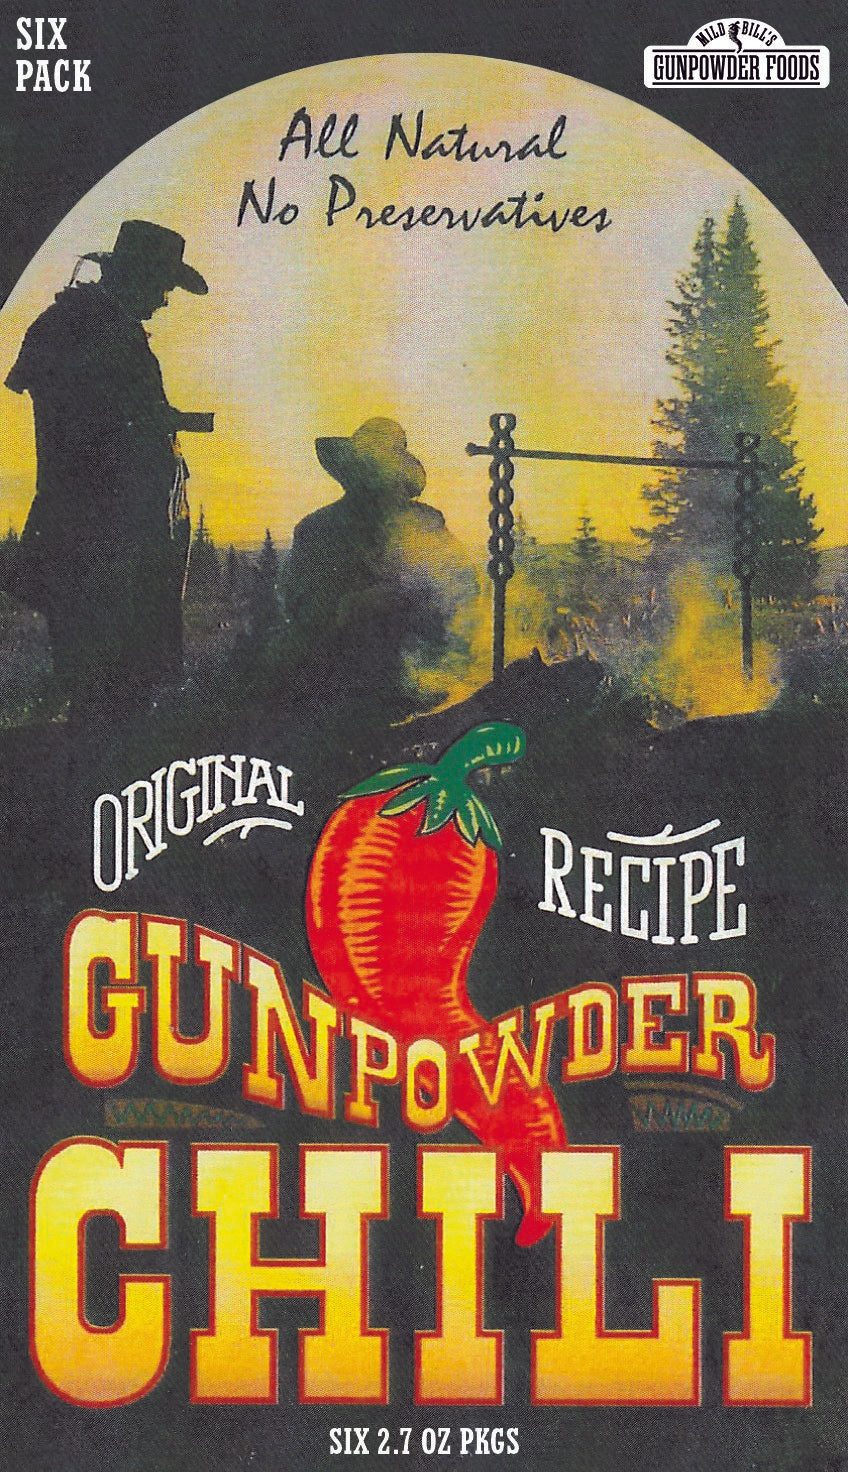 Gunpowder Chili Six Pack